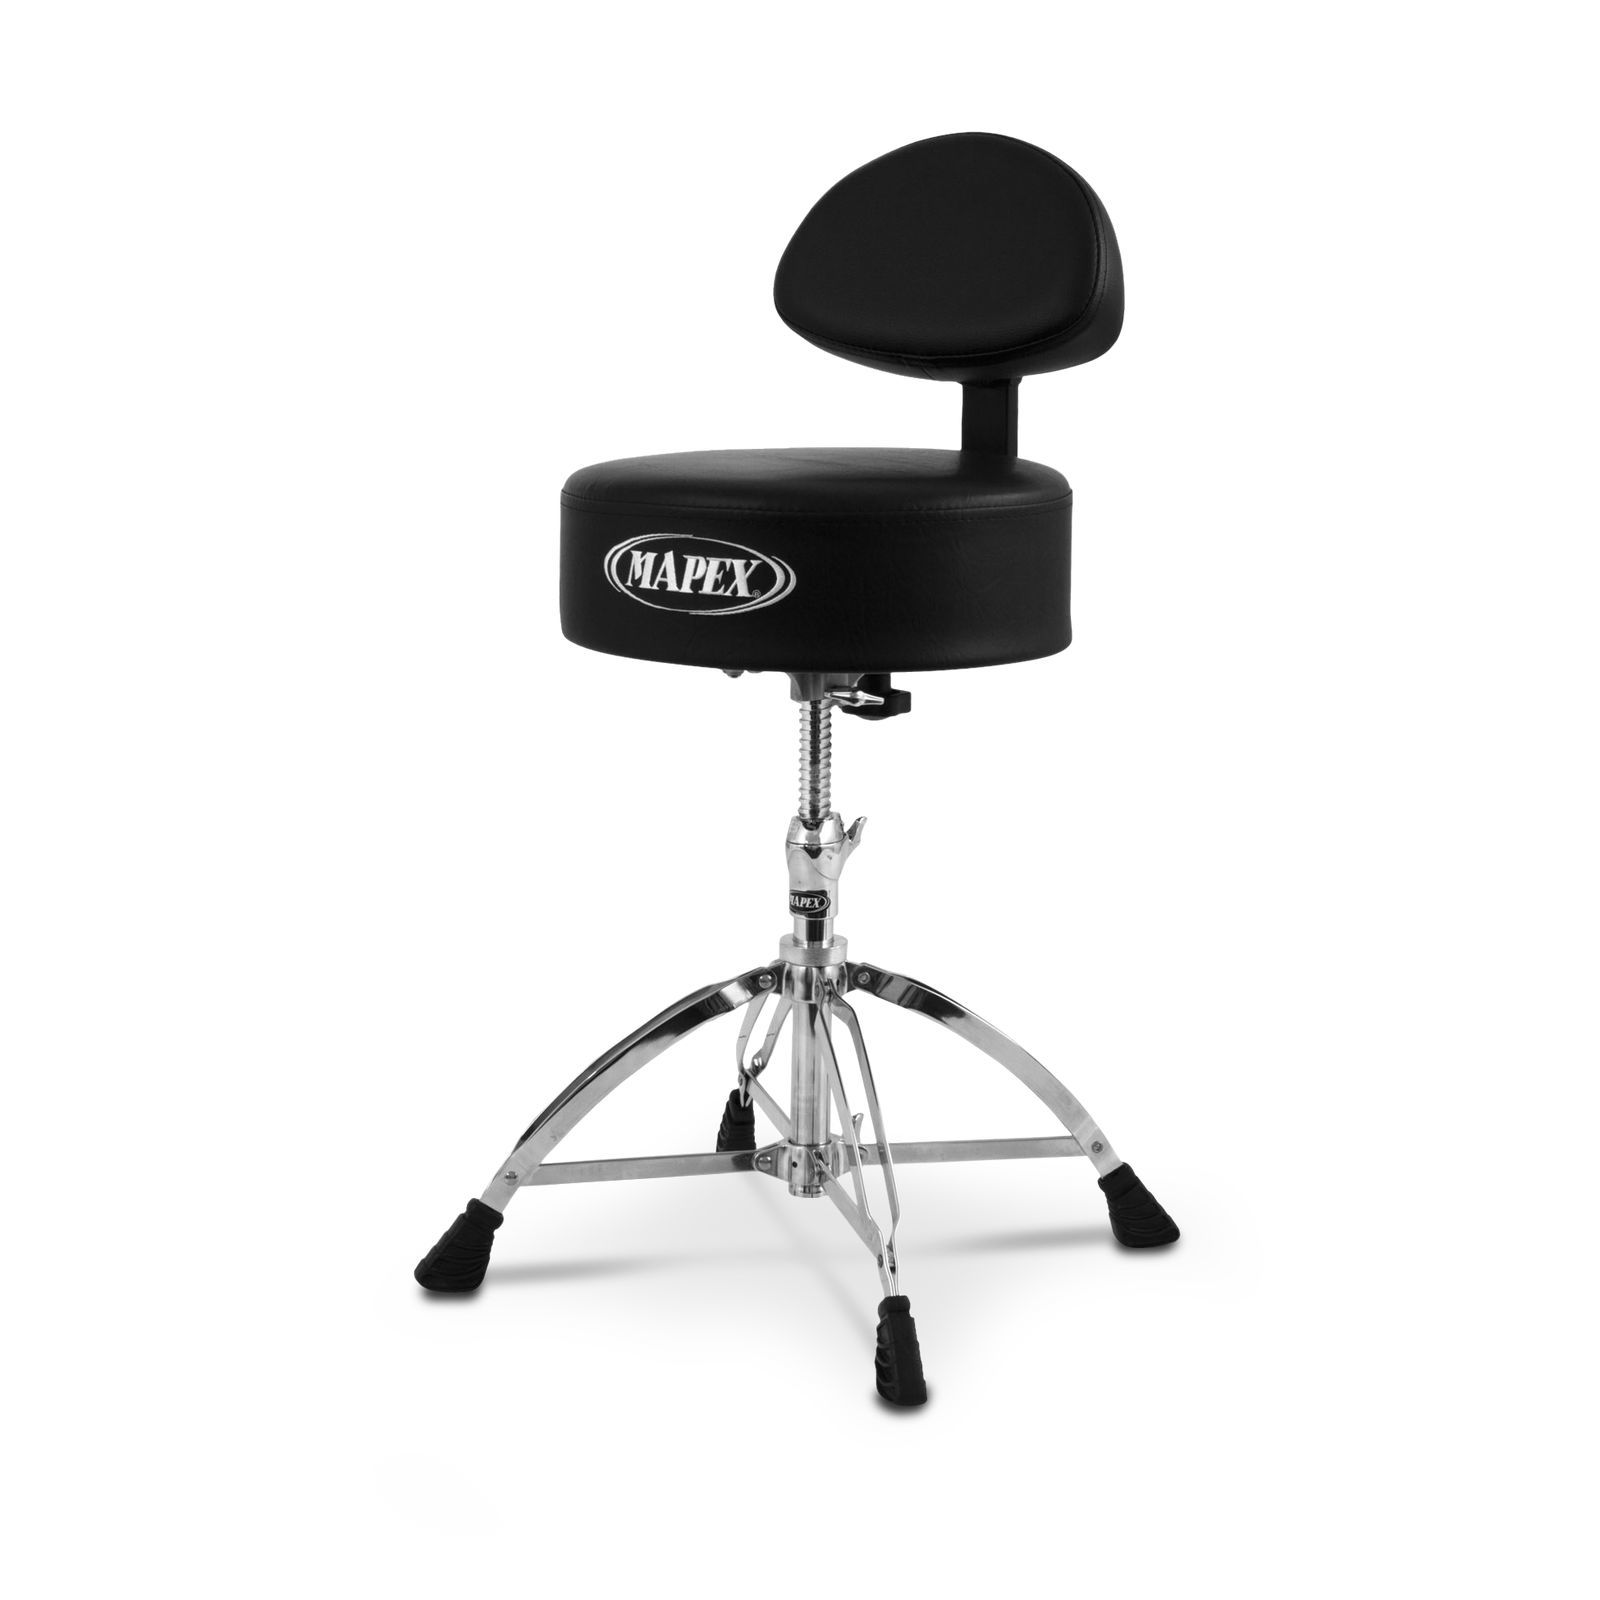 Mapex Drum Throne T770, round seat Product Image